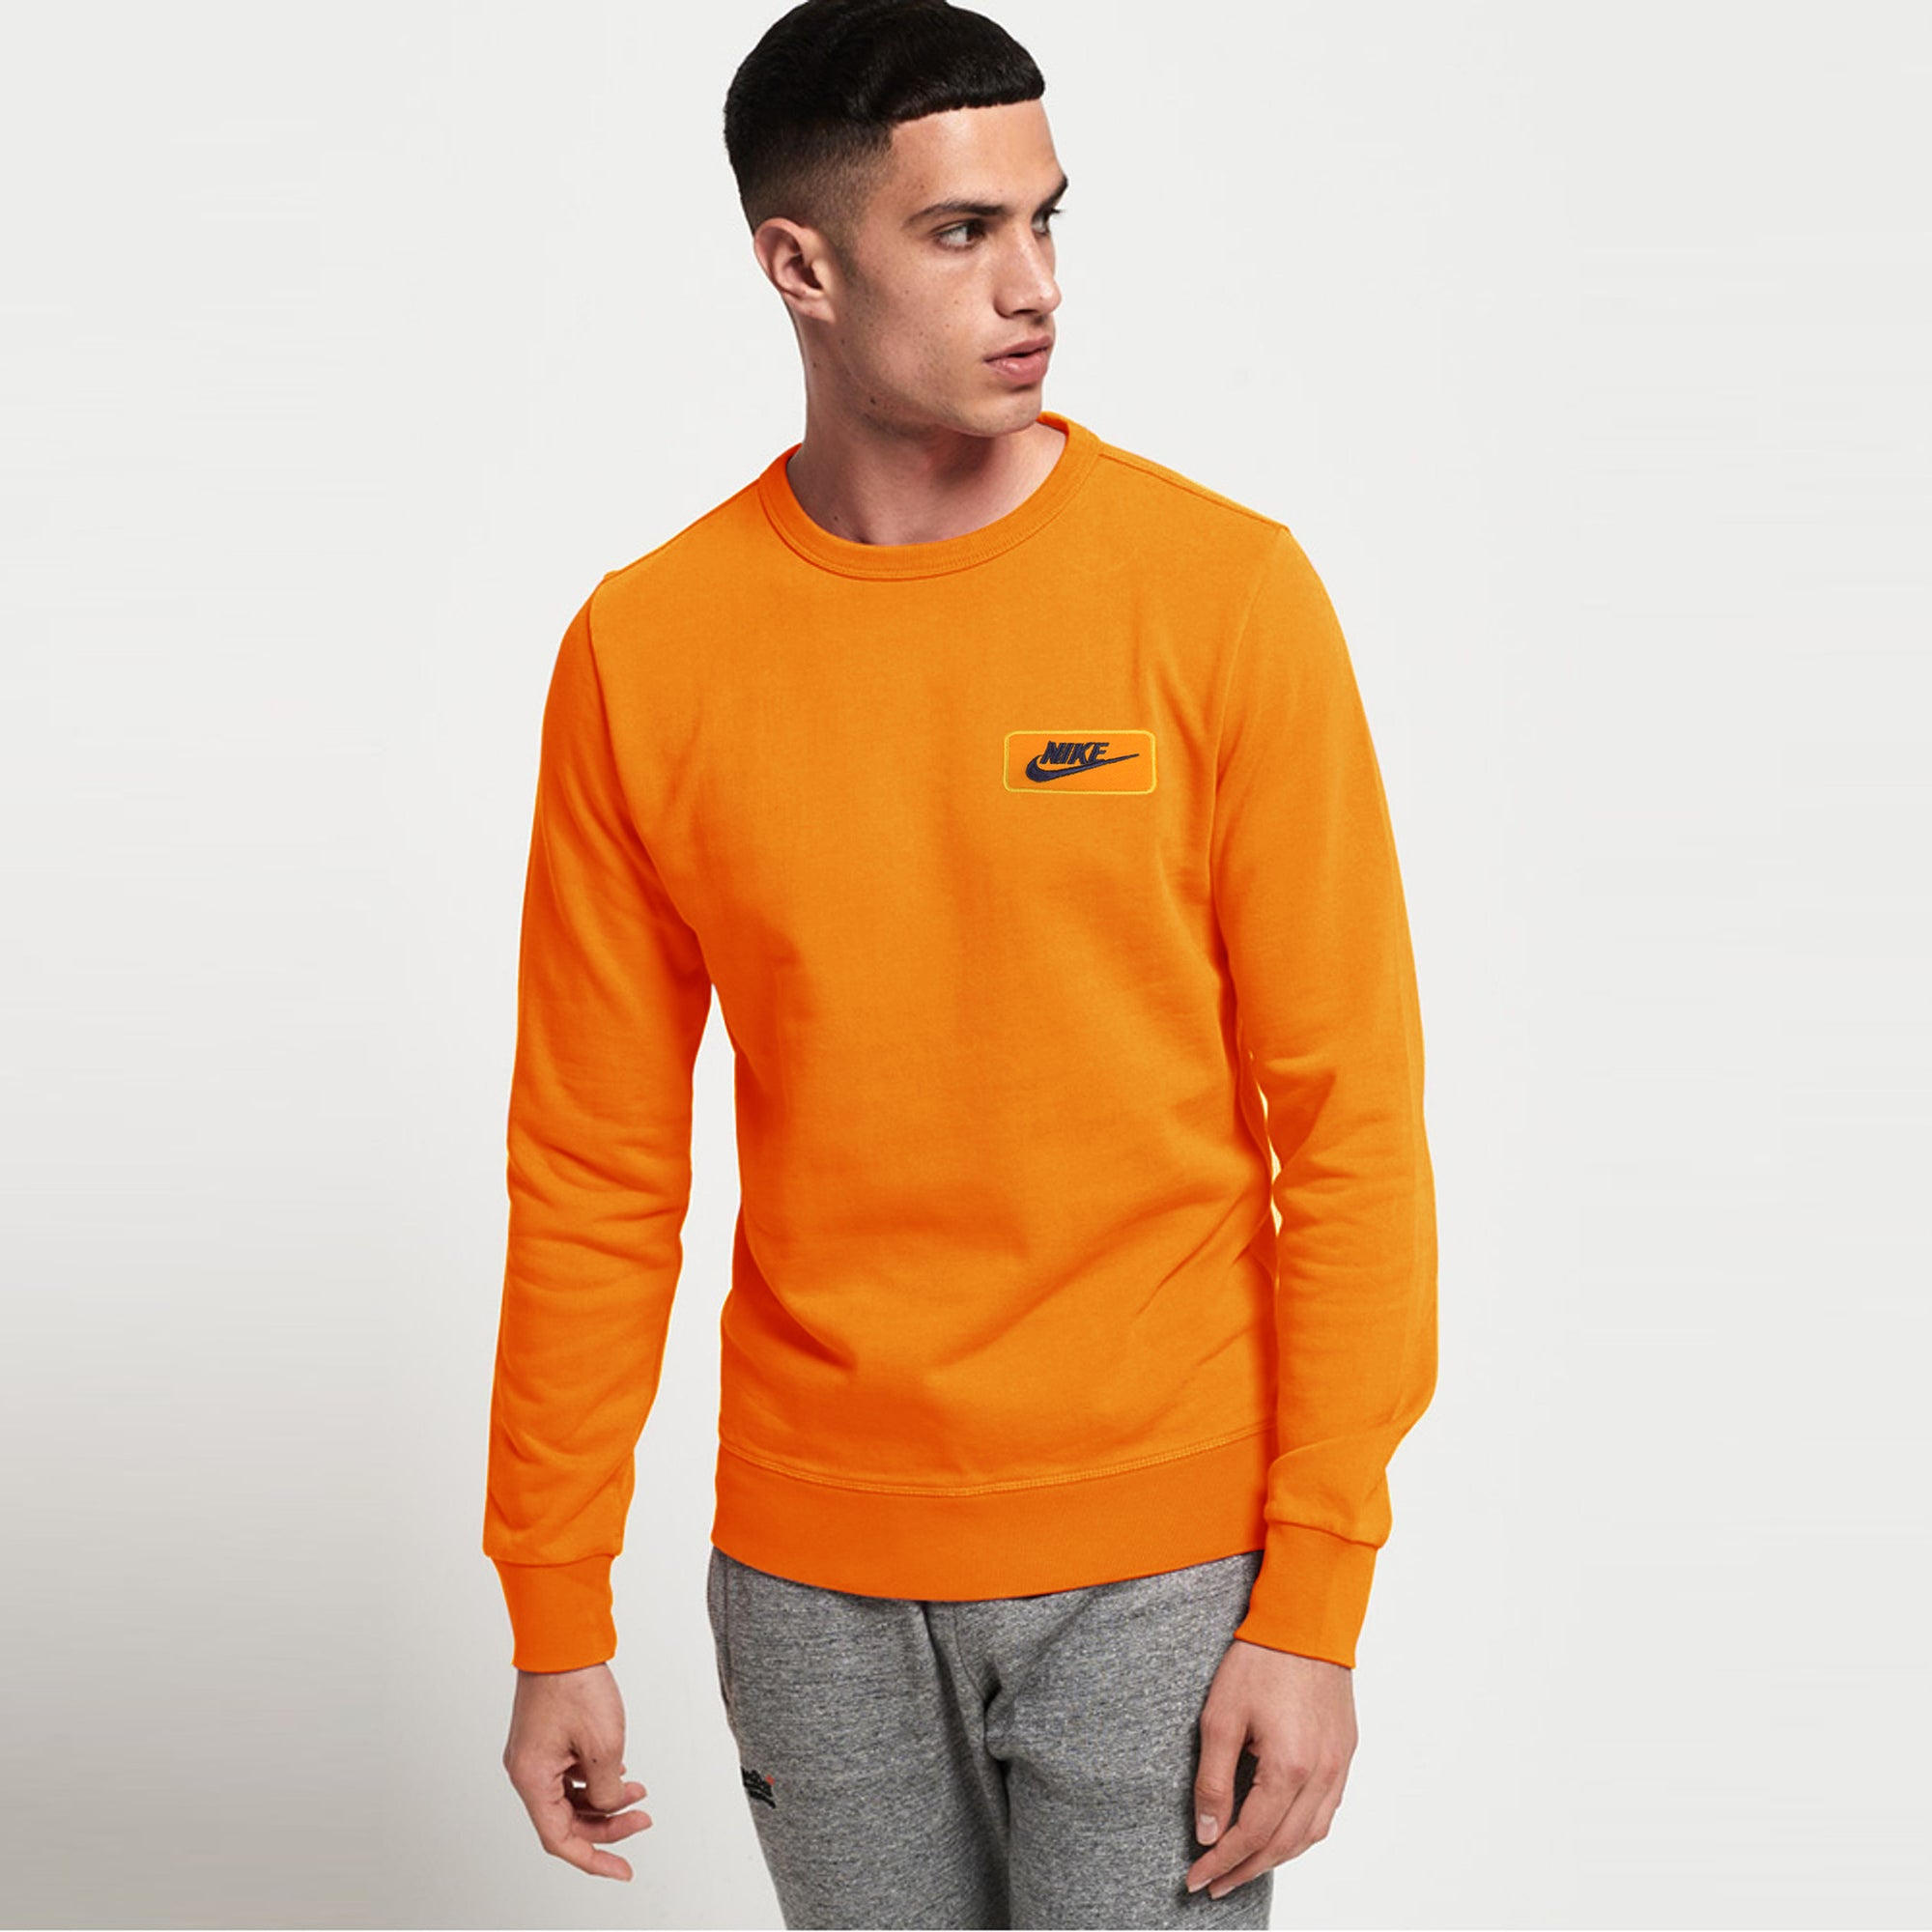 NK Crew Neck Dark Orange & Dark Navy Embroidery Fleece Sweatshirt For Men-Dark Orange-SP1021